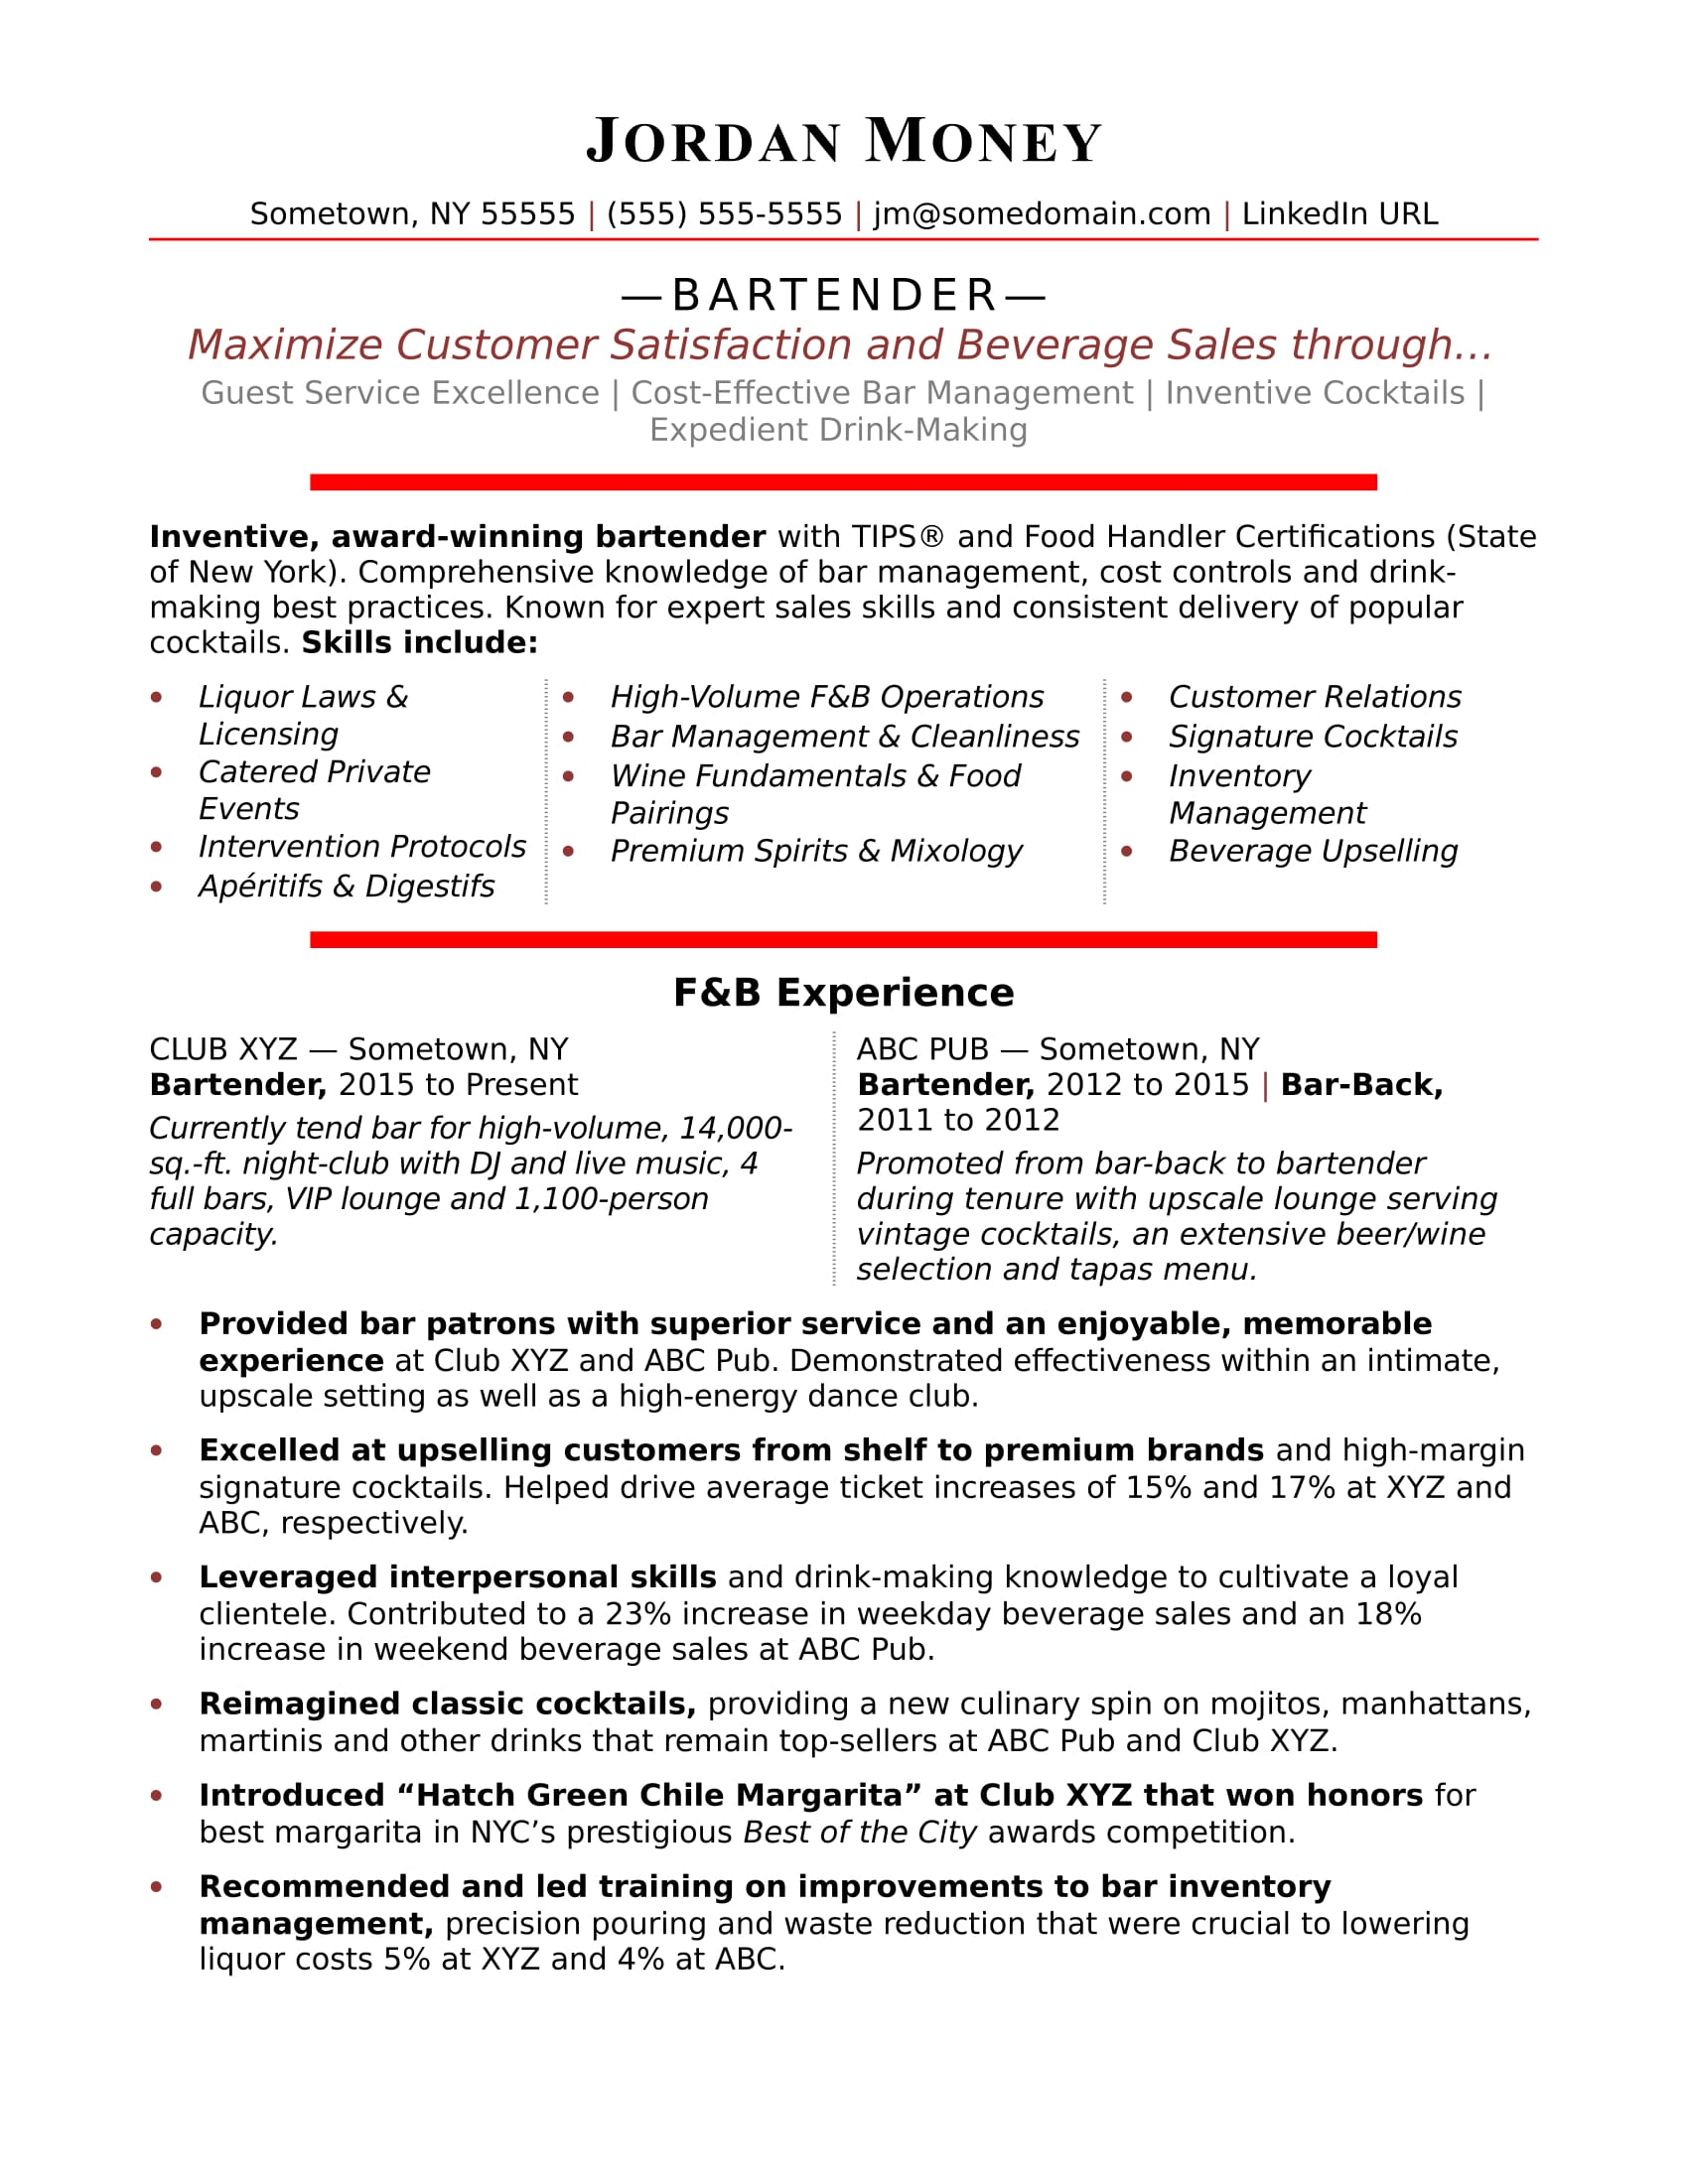 Bartender Resume Summary Bartender Resume Sample Monster